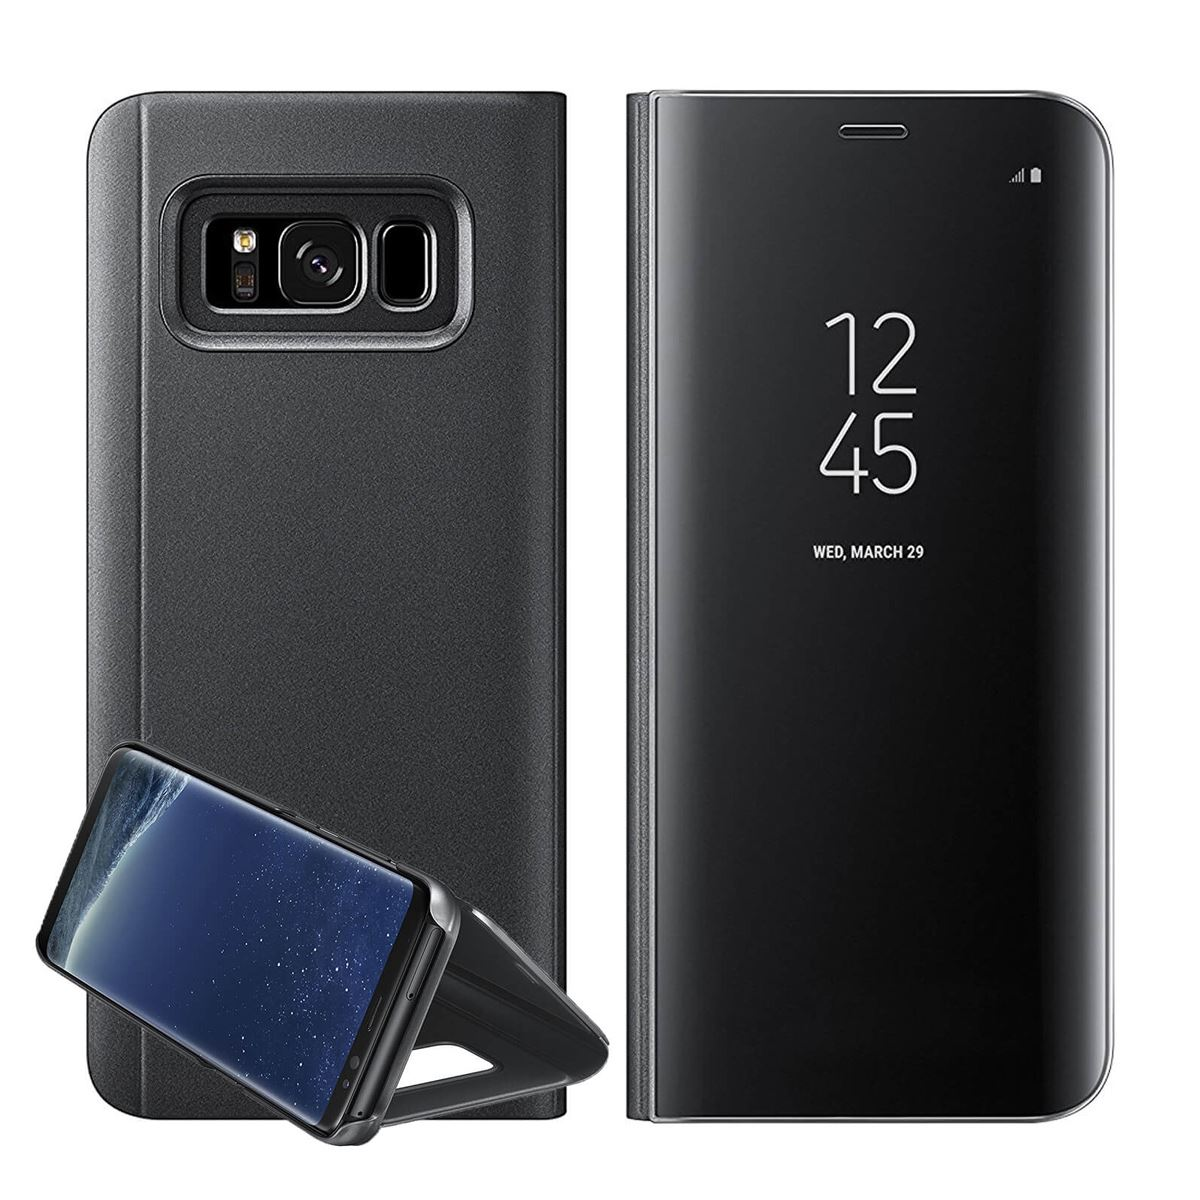 New-Samsung-Galaxy-S10-S9-S8-Smart-View-Mirror-Leather-Flip-Stand-Case-Cover thumbnail 24